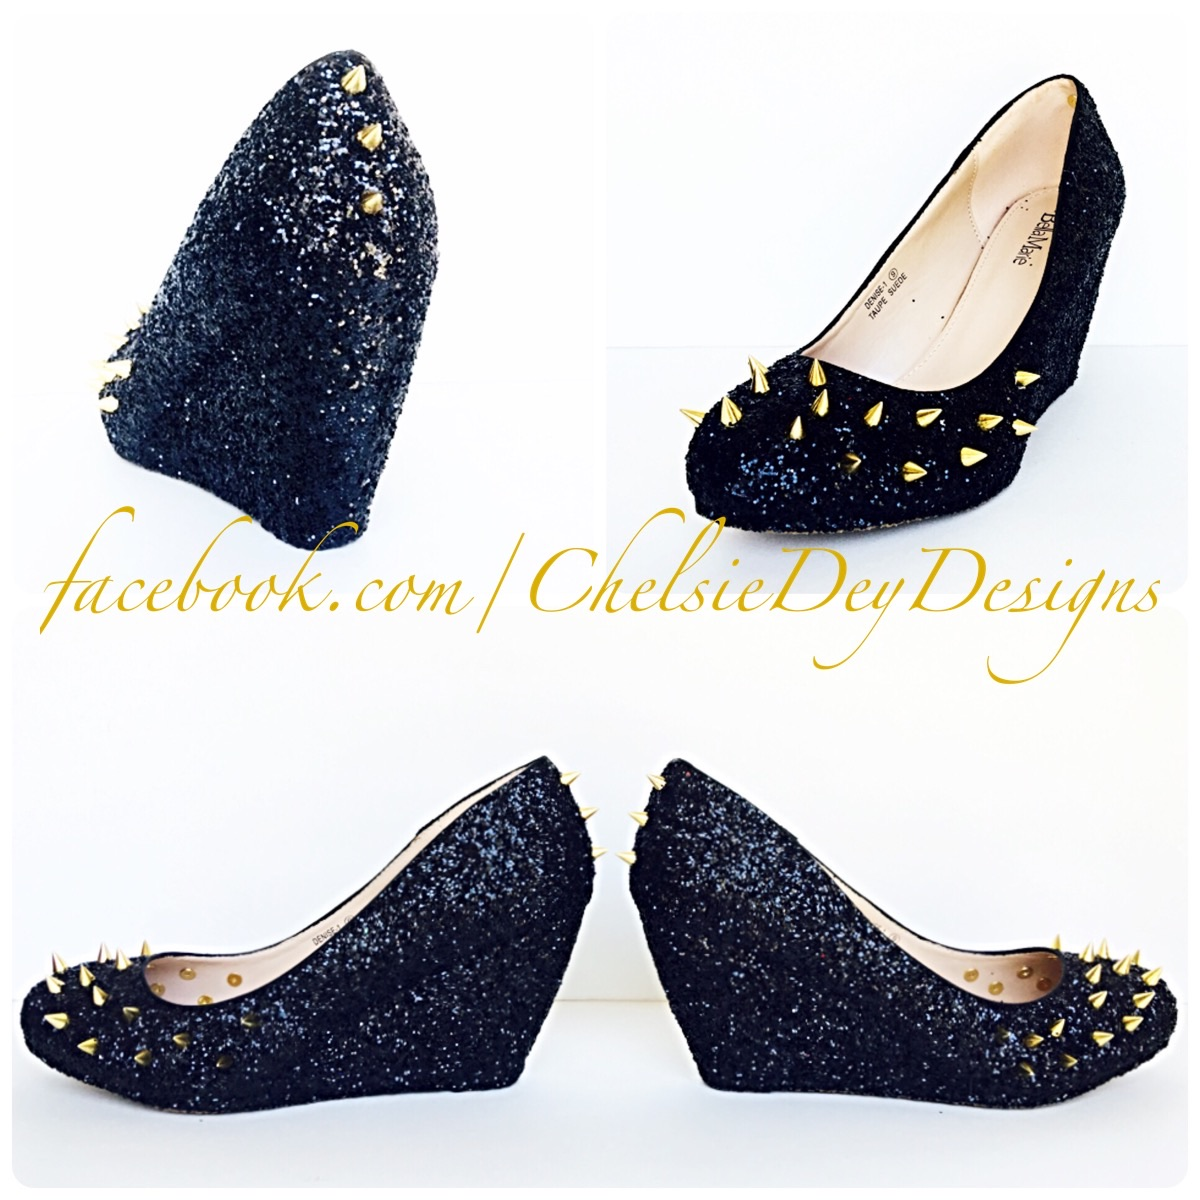 0f41e042aa24 Black Glitter Wedges - Sparkly High Heel Pump Wedges - Wedding Gold Spike  Shoes